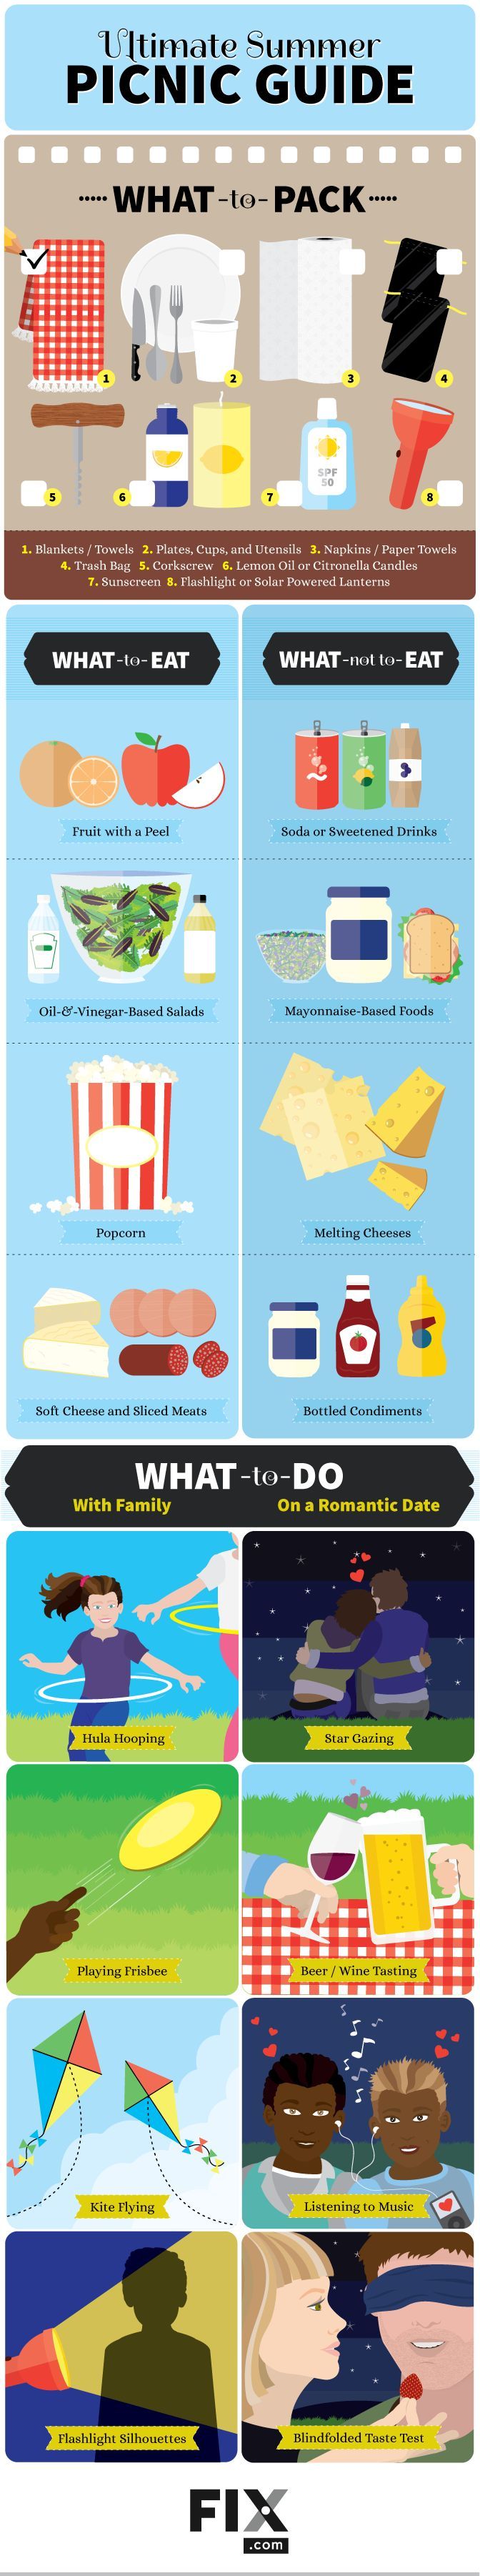 Nothing says summer like a picnic! Whether you're planning a day out with the kids, or a romantic getaway for two, Fix has everything you need to know about planning the ultimate summer picnic!